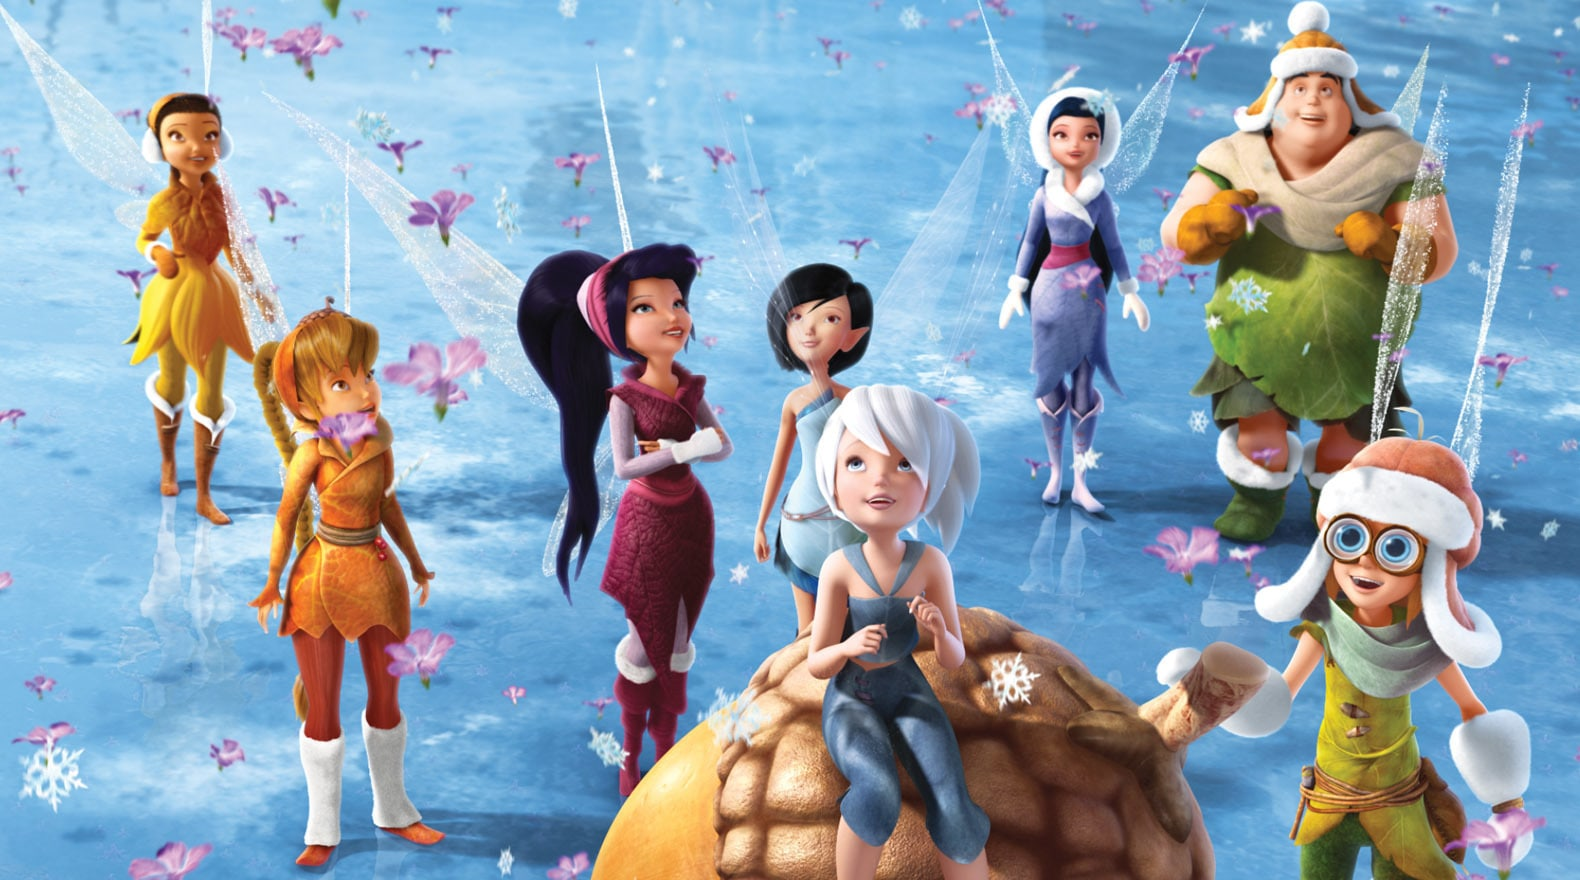 The Fairies celebrate with both flowers and snowflakes.